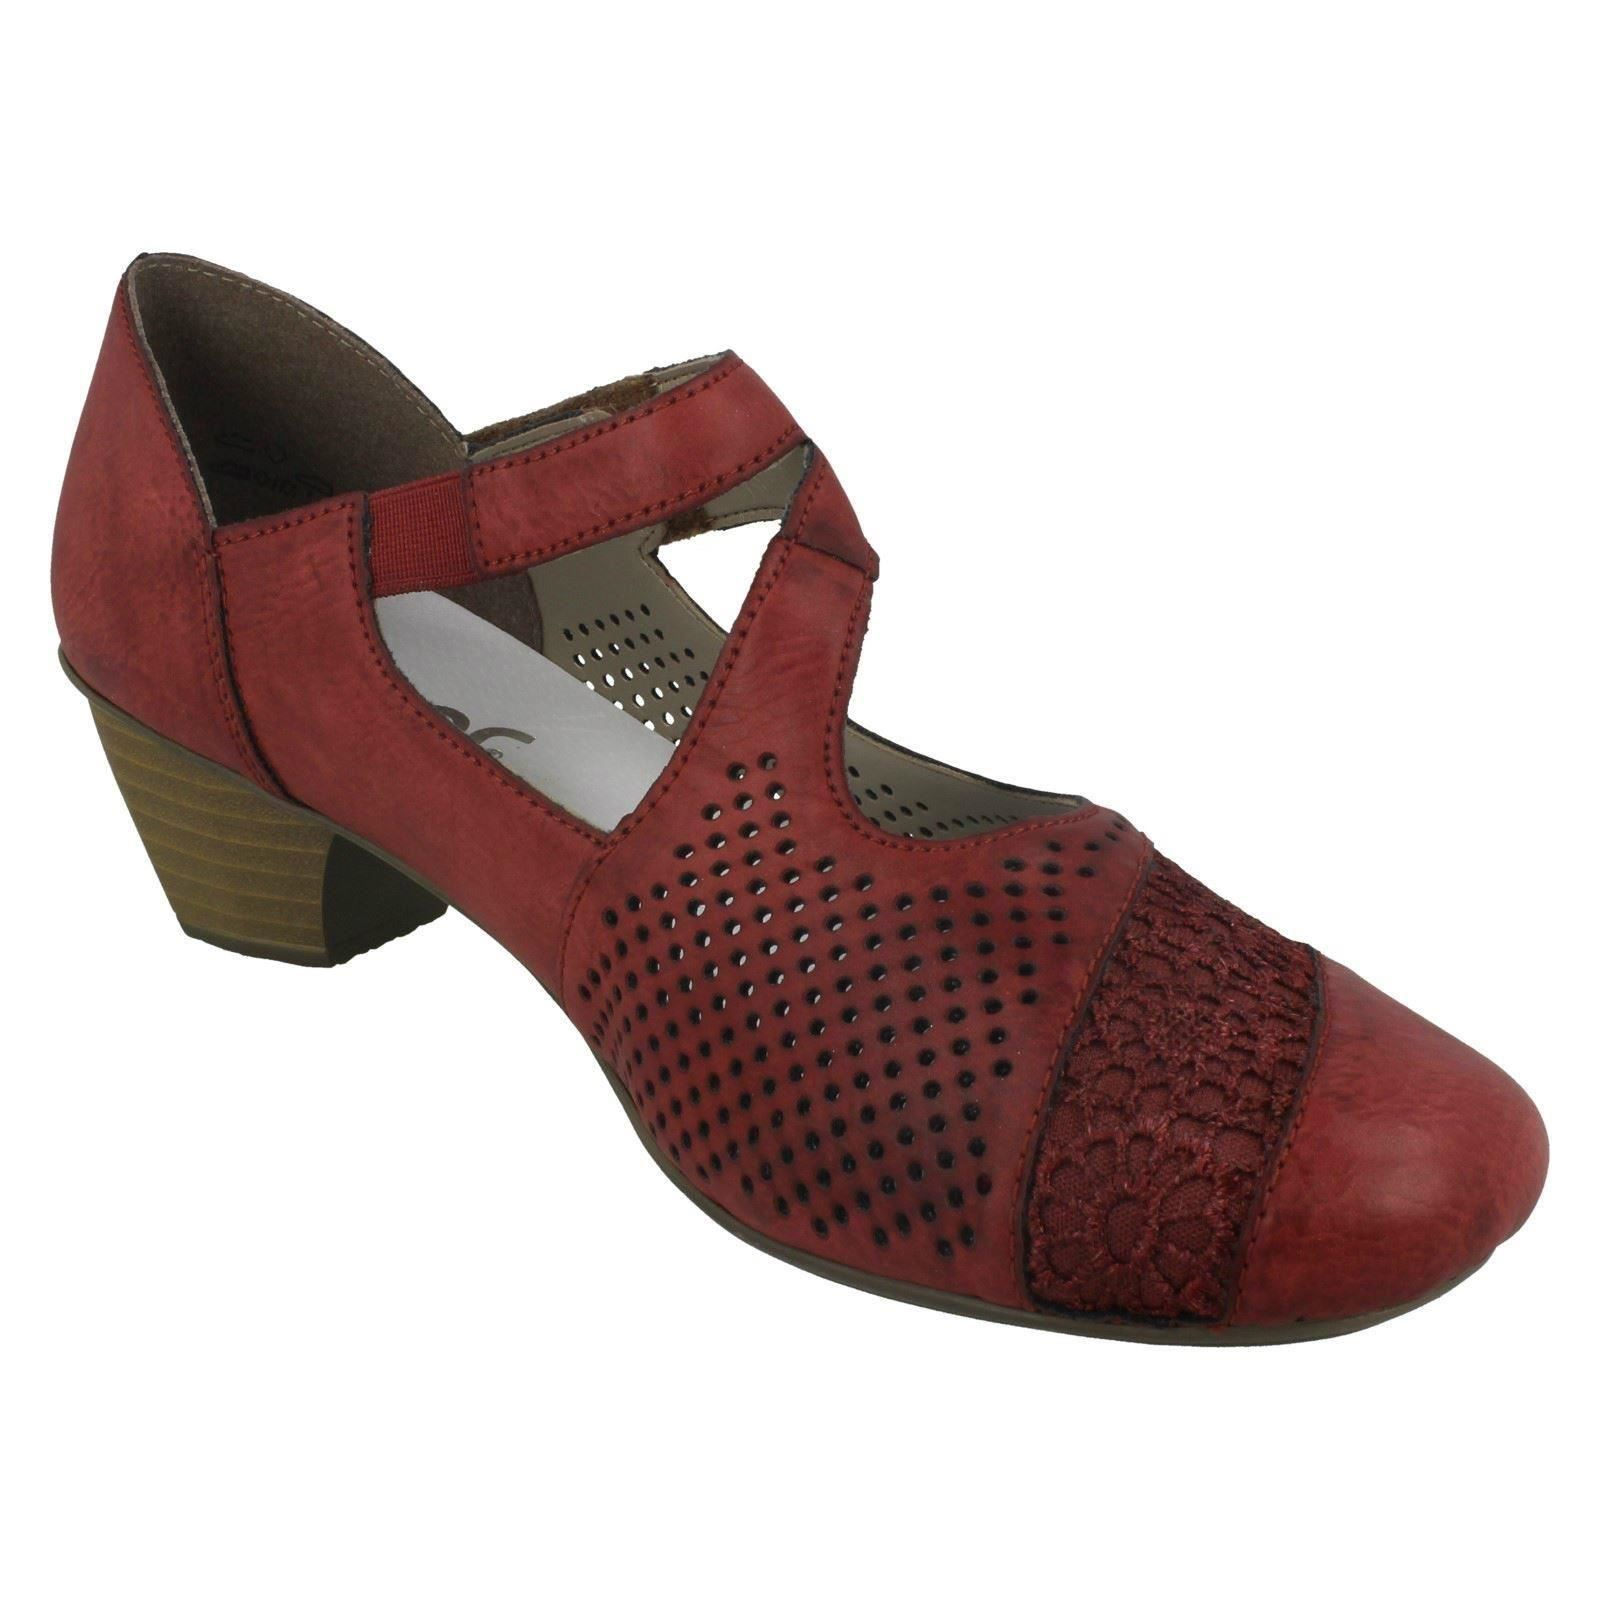 Rieker 41743 35 Dark Red Mary Jane Shoes